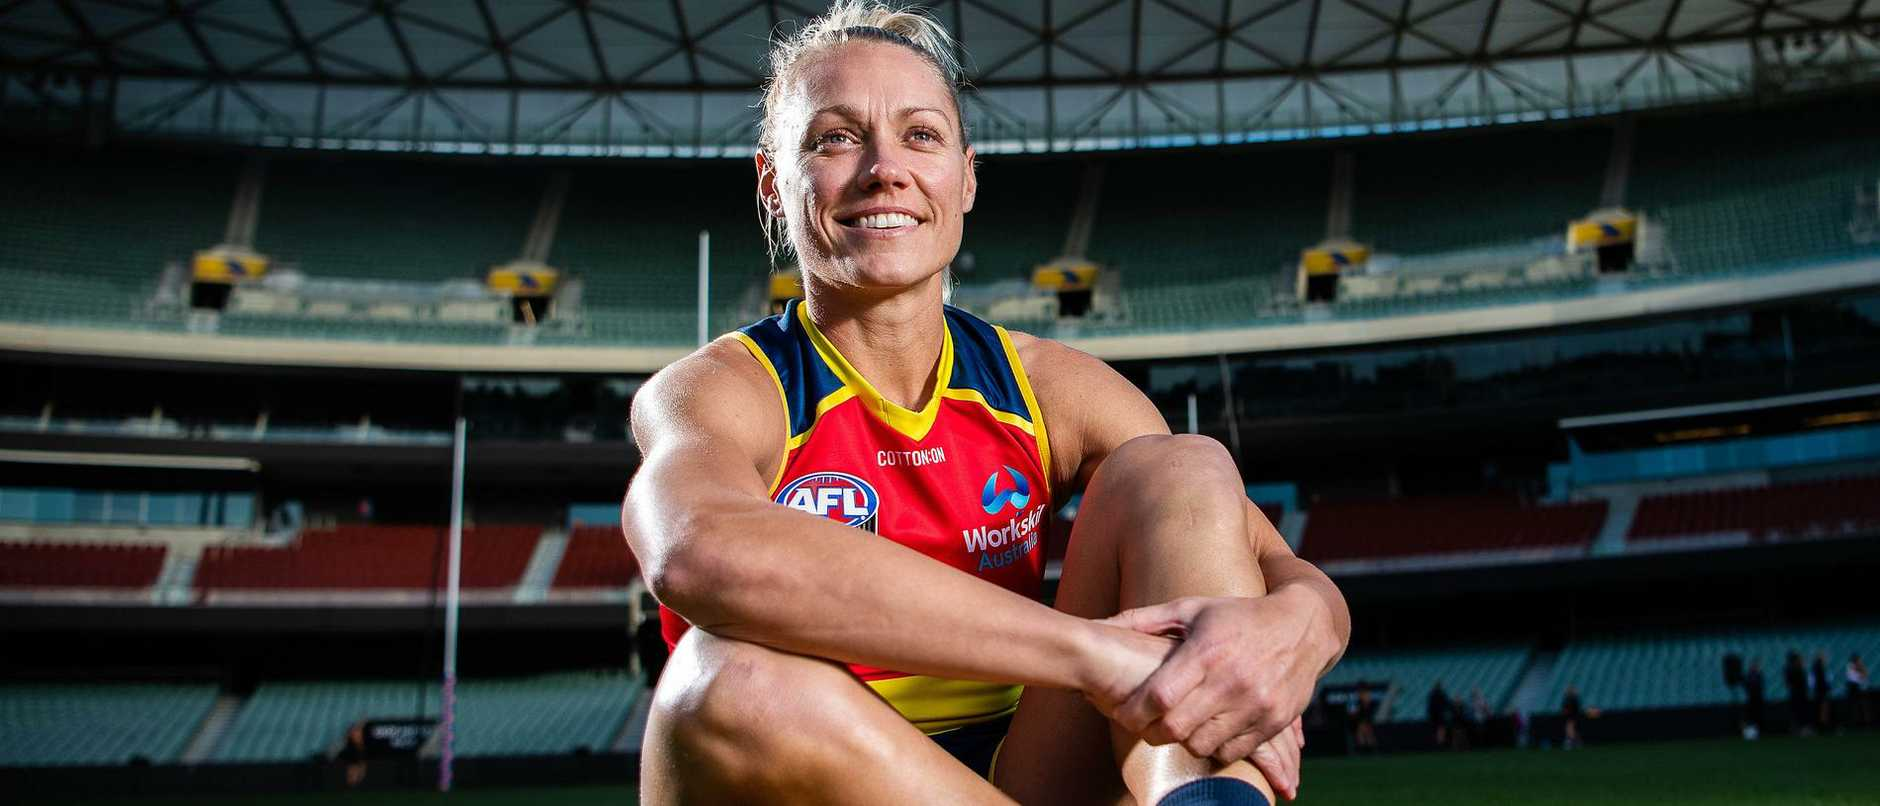 She's one of the most-loved footballers of the past five years, but the 2021 season hasn't been easy for Erin Phillips. This is how she bounced back.